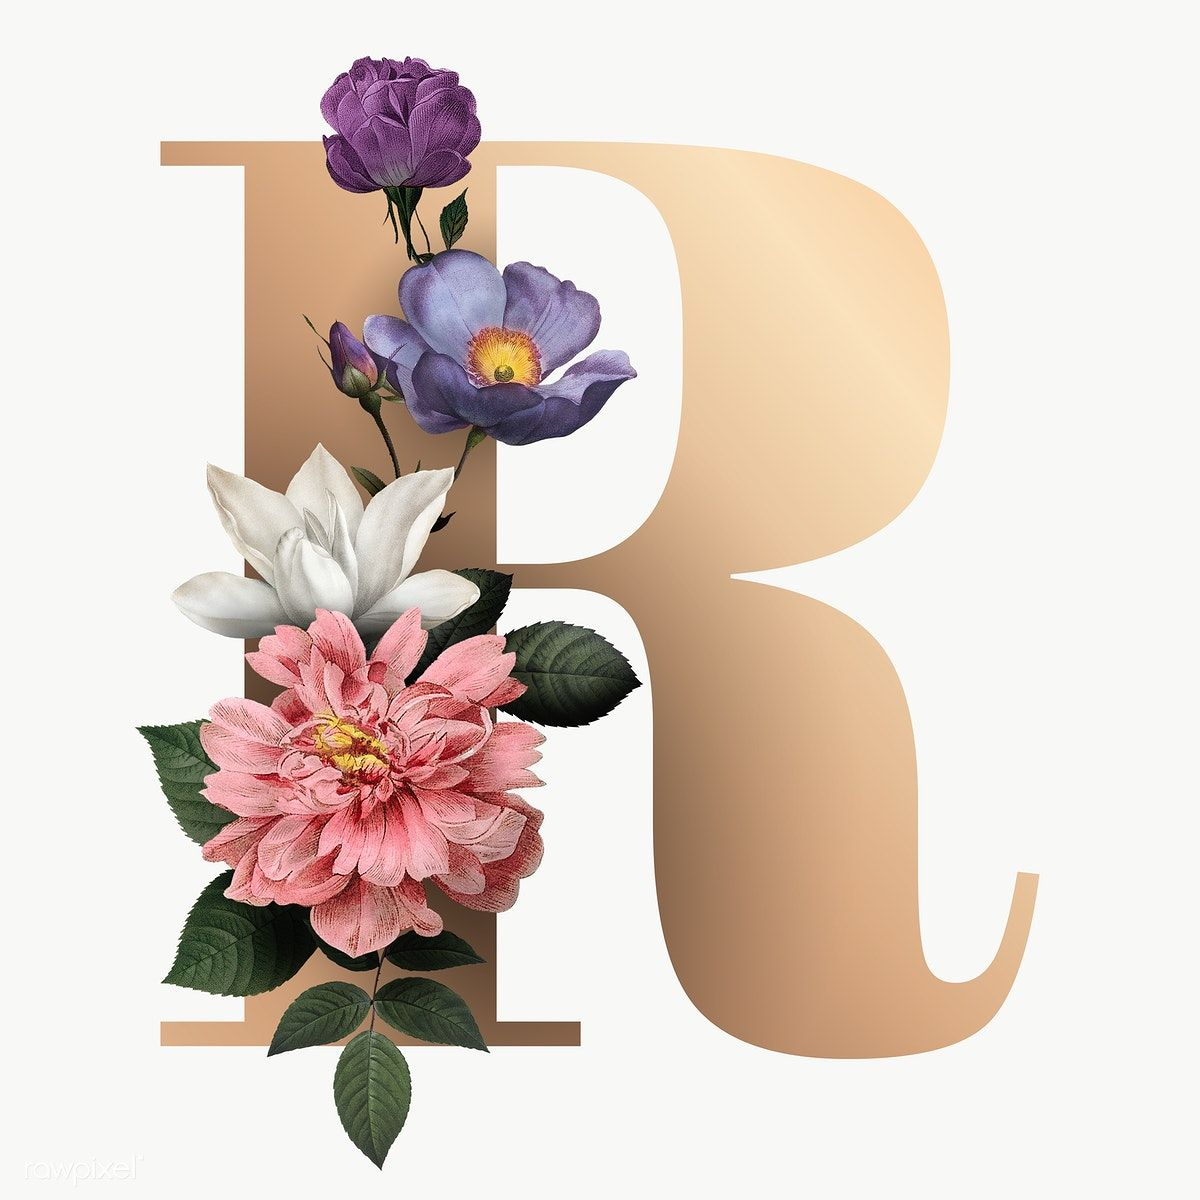 Download Free Png Of Classic And Elegant Floral Alphabet Font Letter R Transparent Png About Golden Le Fonts Alphabet Lettering Alphabet Fonts Lettering Fonts